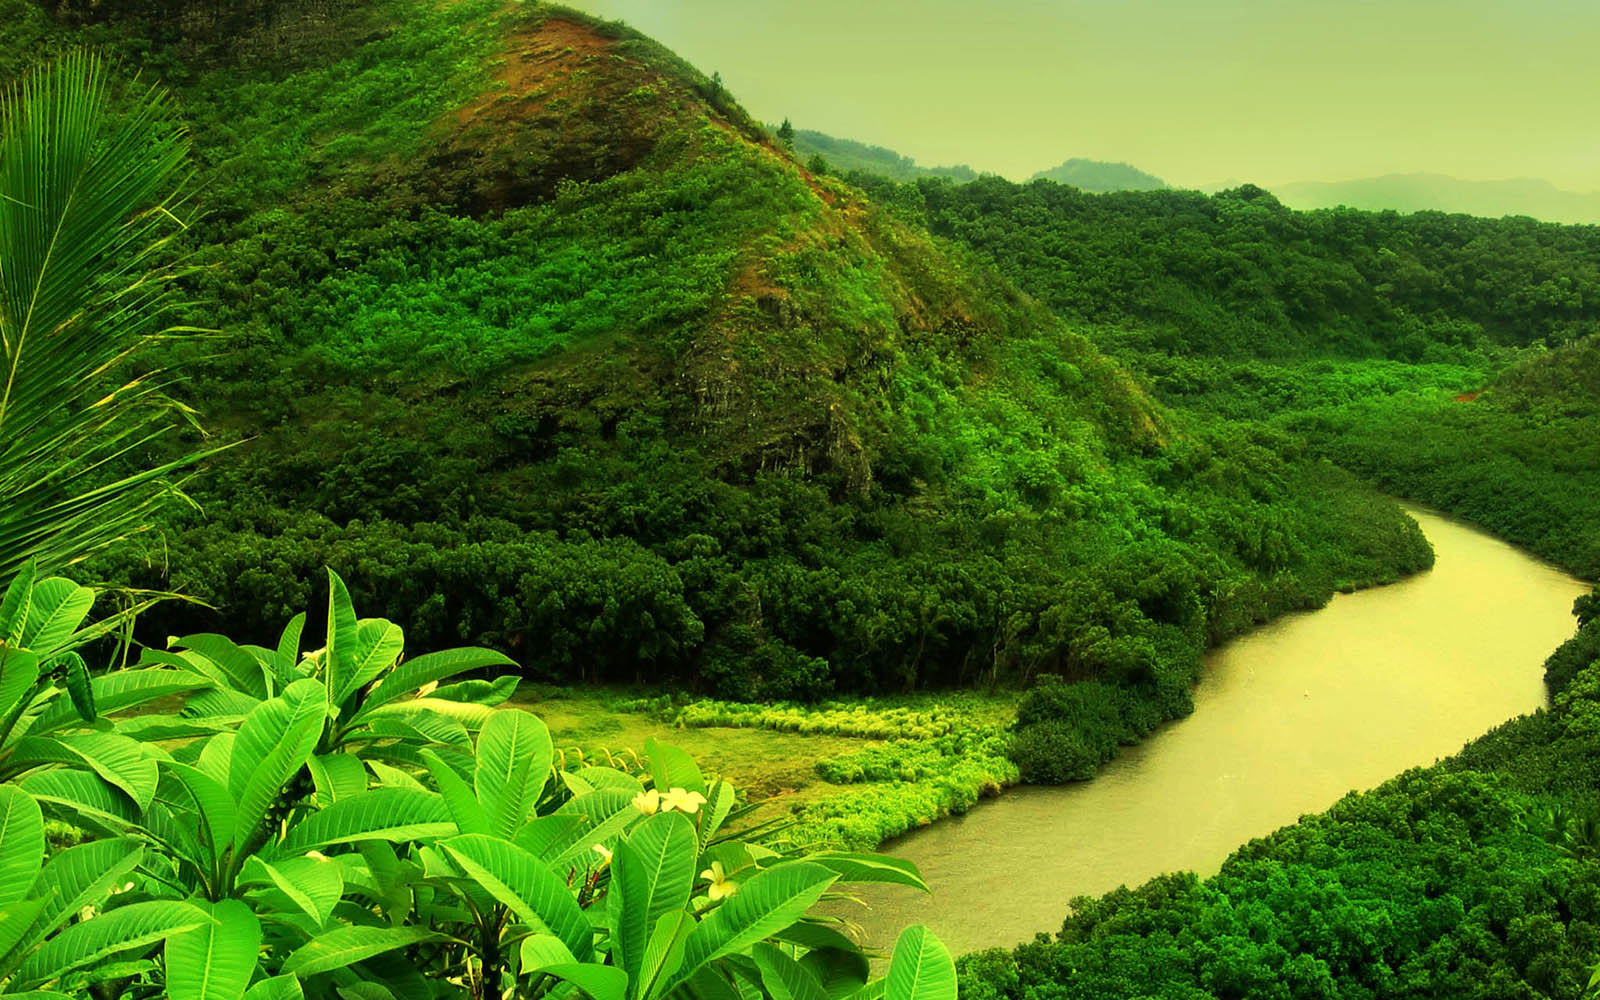 27492 best beautiful nature background images ✓ free stock photos download for commercial use in hd high resolution jpg images format. Green Nature Wallpapers:wallpapers screensavers